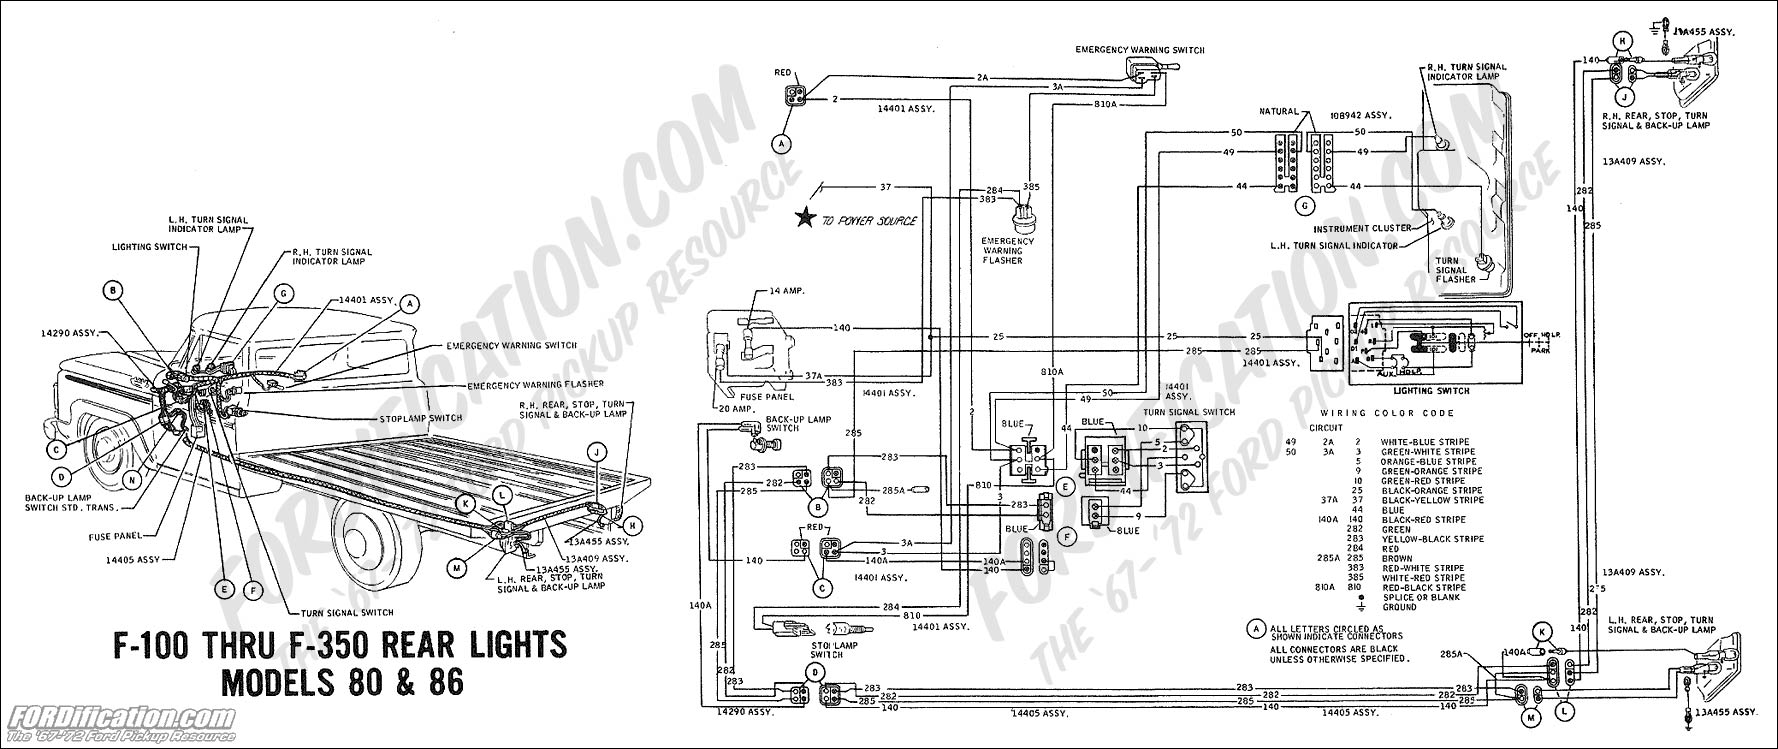 hight resolution of ford f350 lights wiring diagram on 1972 ford f100 ke light wiring 2008 f350 super duty wiring diagram f350 ke light wiring diagram